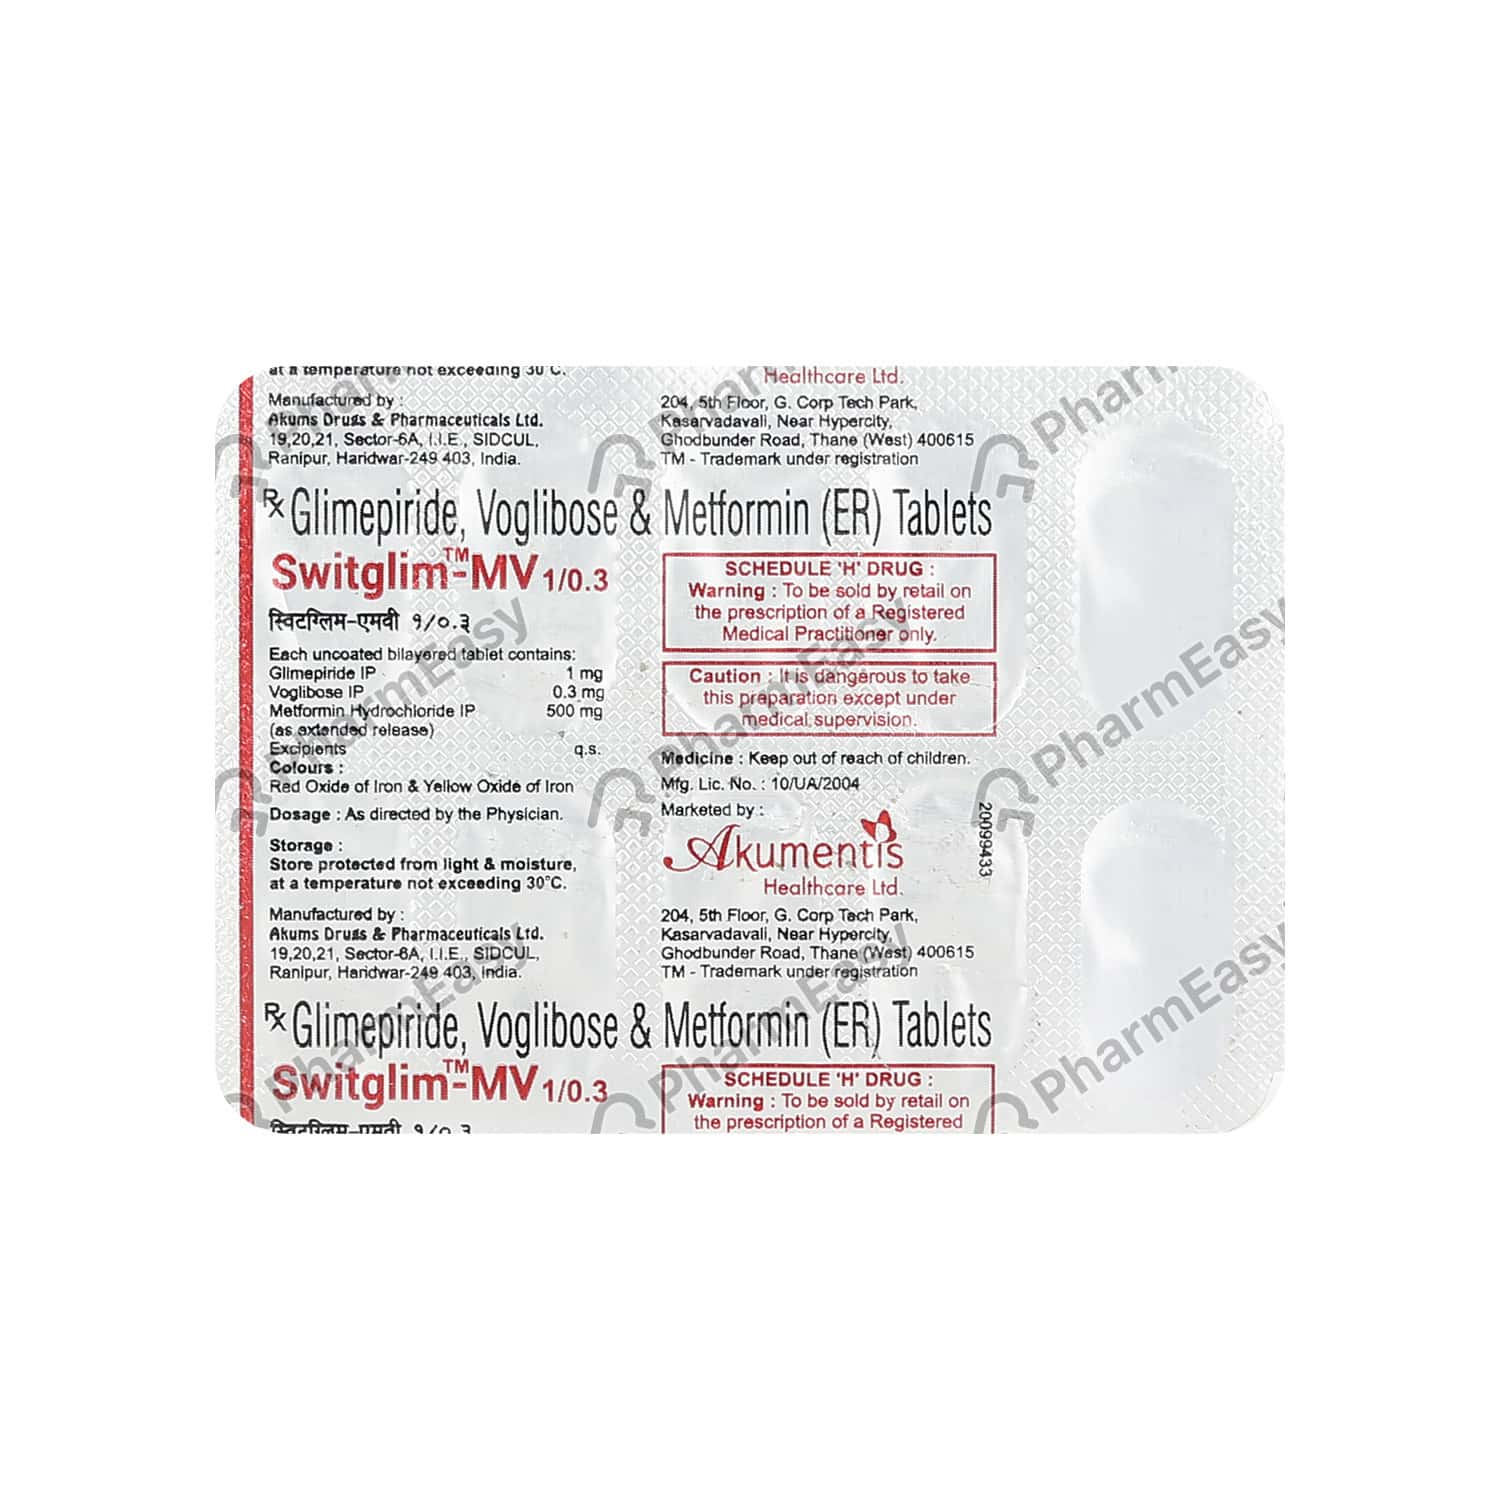 Switglim Mv 1/0.3mg Tablet